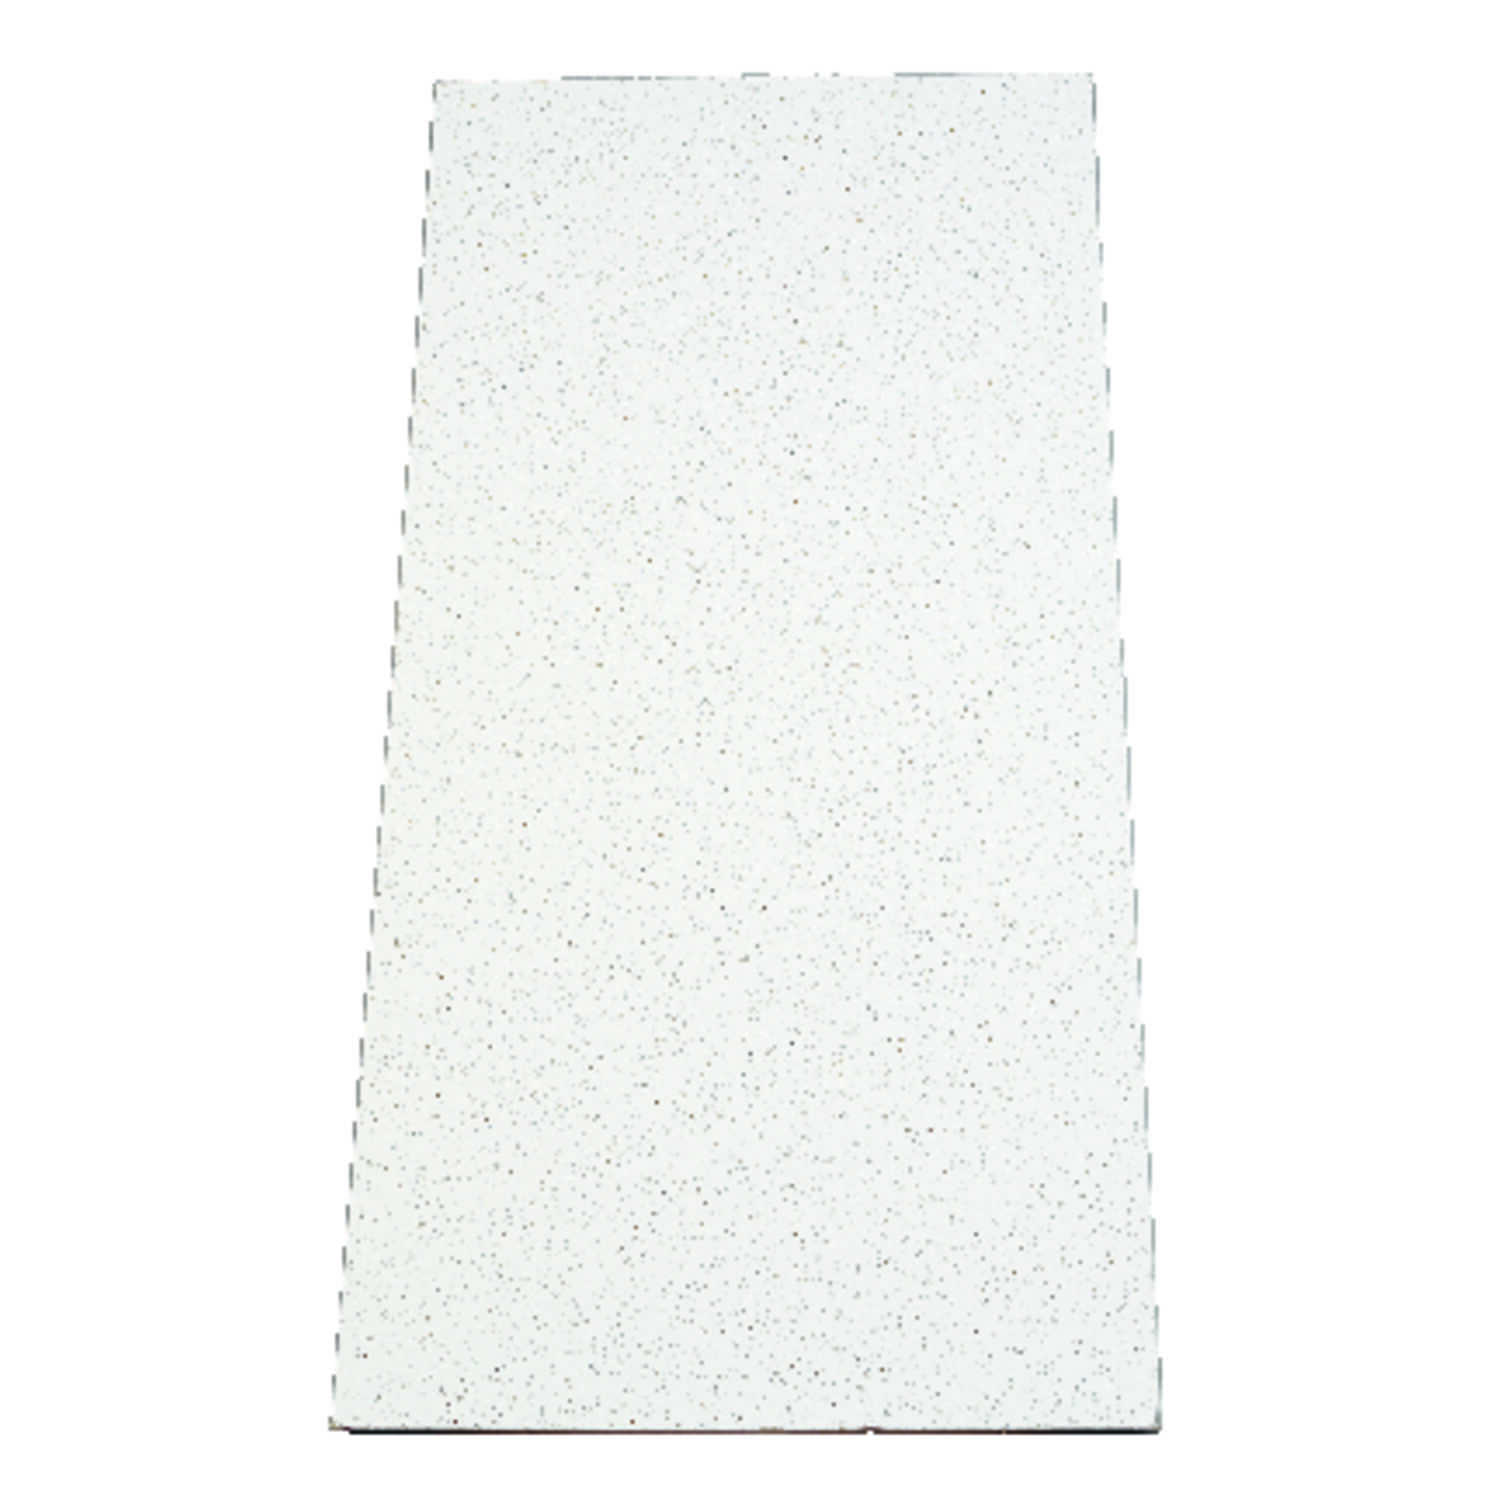 USG  2 ft. W x 4 ft. L Mineral Fiber  Square Edge  Radar  Ceiling Tile